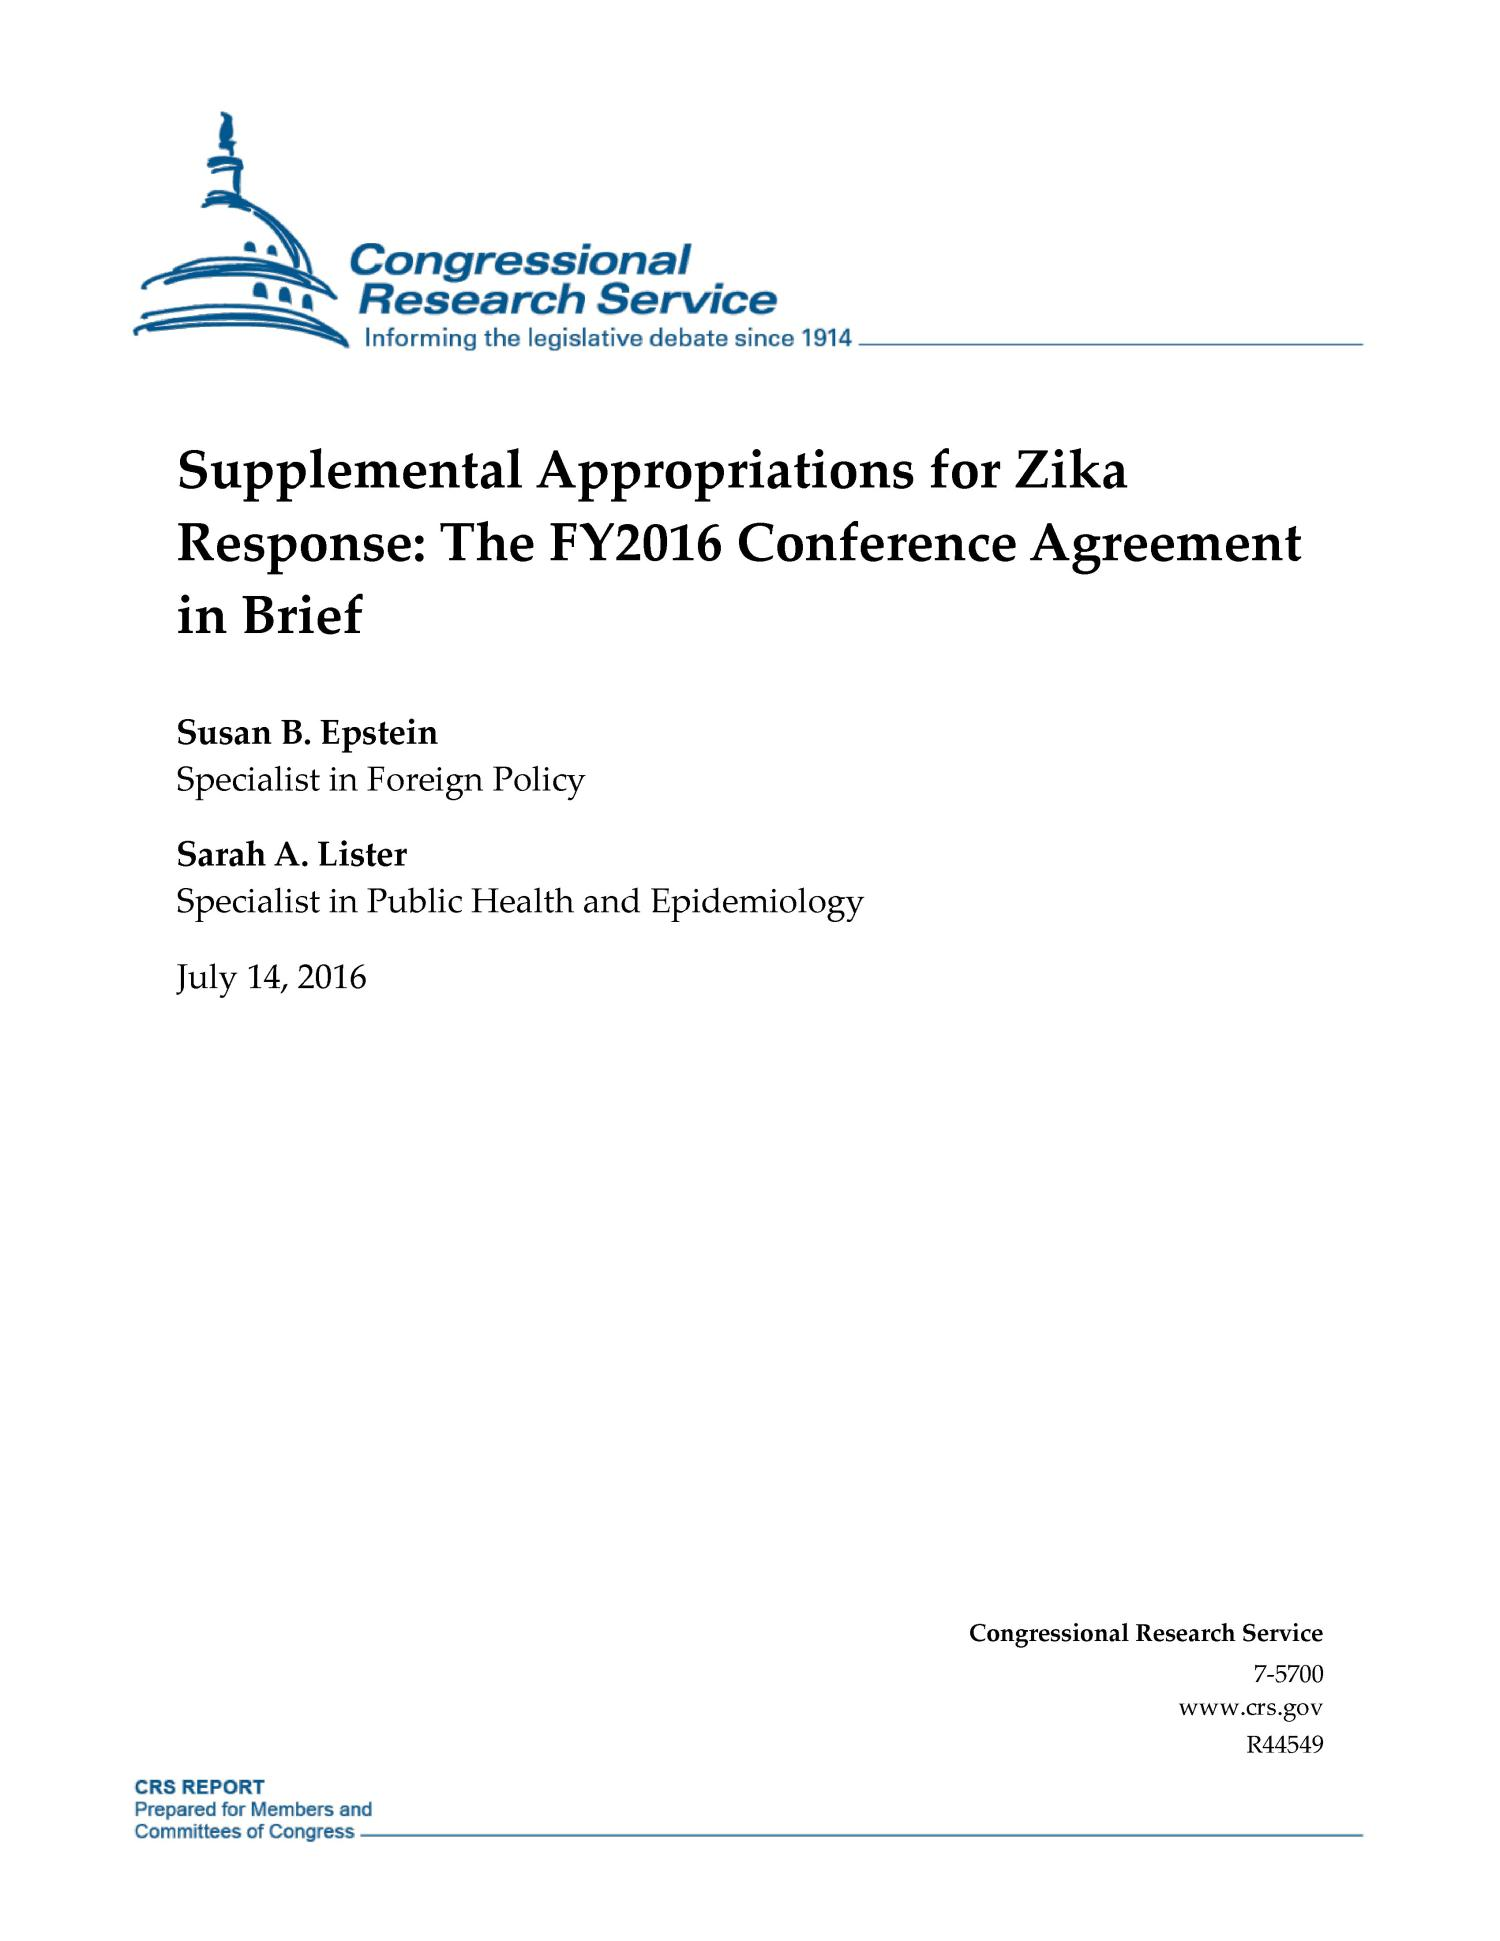 Supplemental Appropriations For Zika Response The Fy2016 Conference